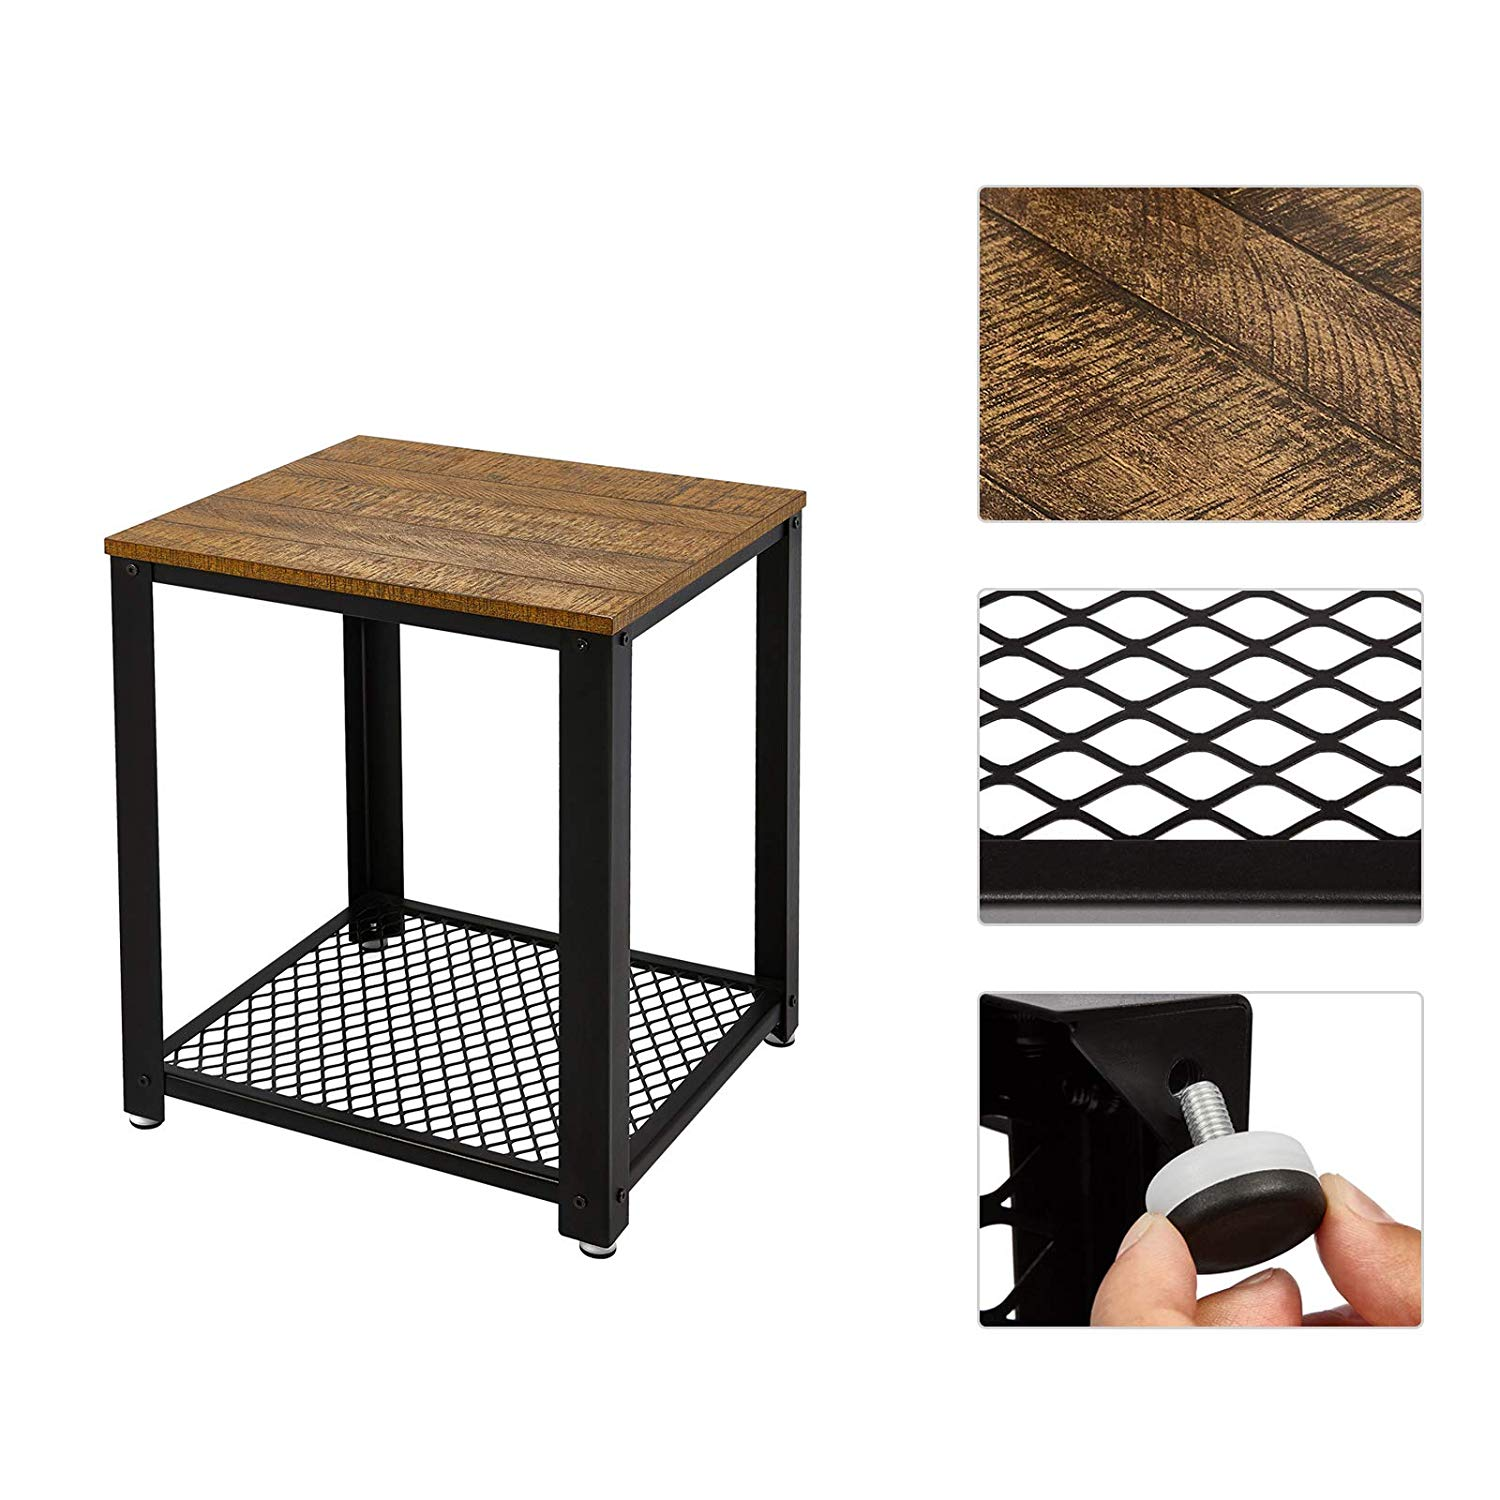 End Of Sofa Coffee Table Bedside Table Living Room Table Vintage Style Industrial Wooden Iron Metal Coffee Tables Home Furniture Coffee Tables Aliexpress